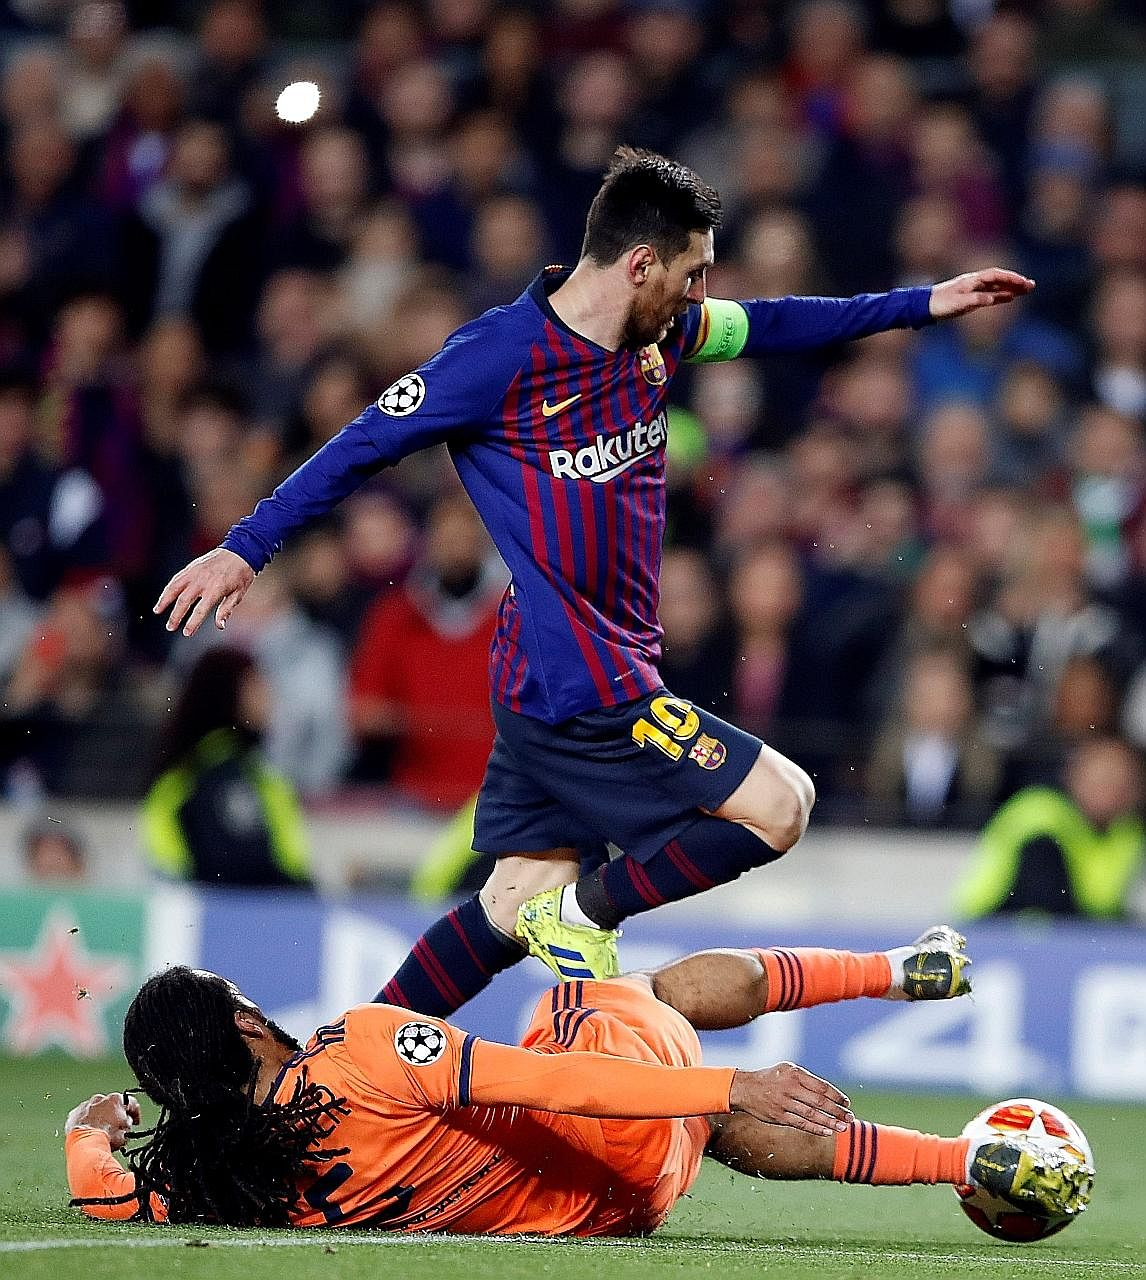 Lionel Messi hurdling one of many challenges from Lyon's Jason Denayer. The Argentina superstar scored twice and had two assists.